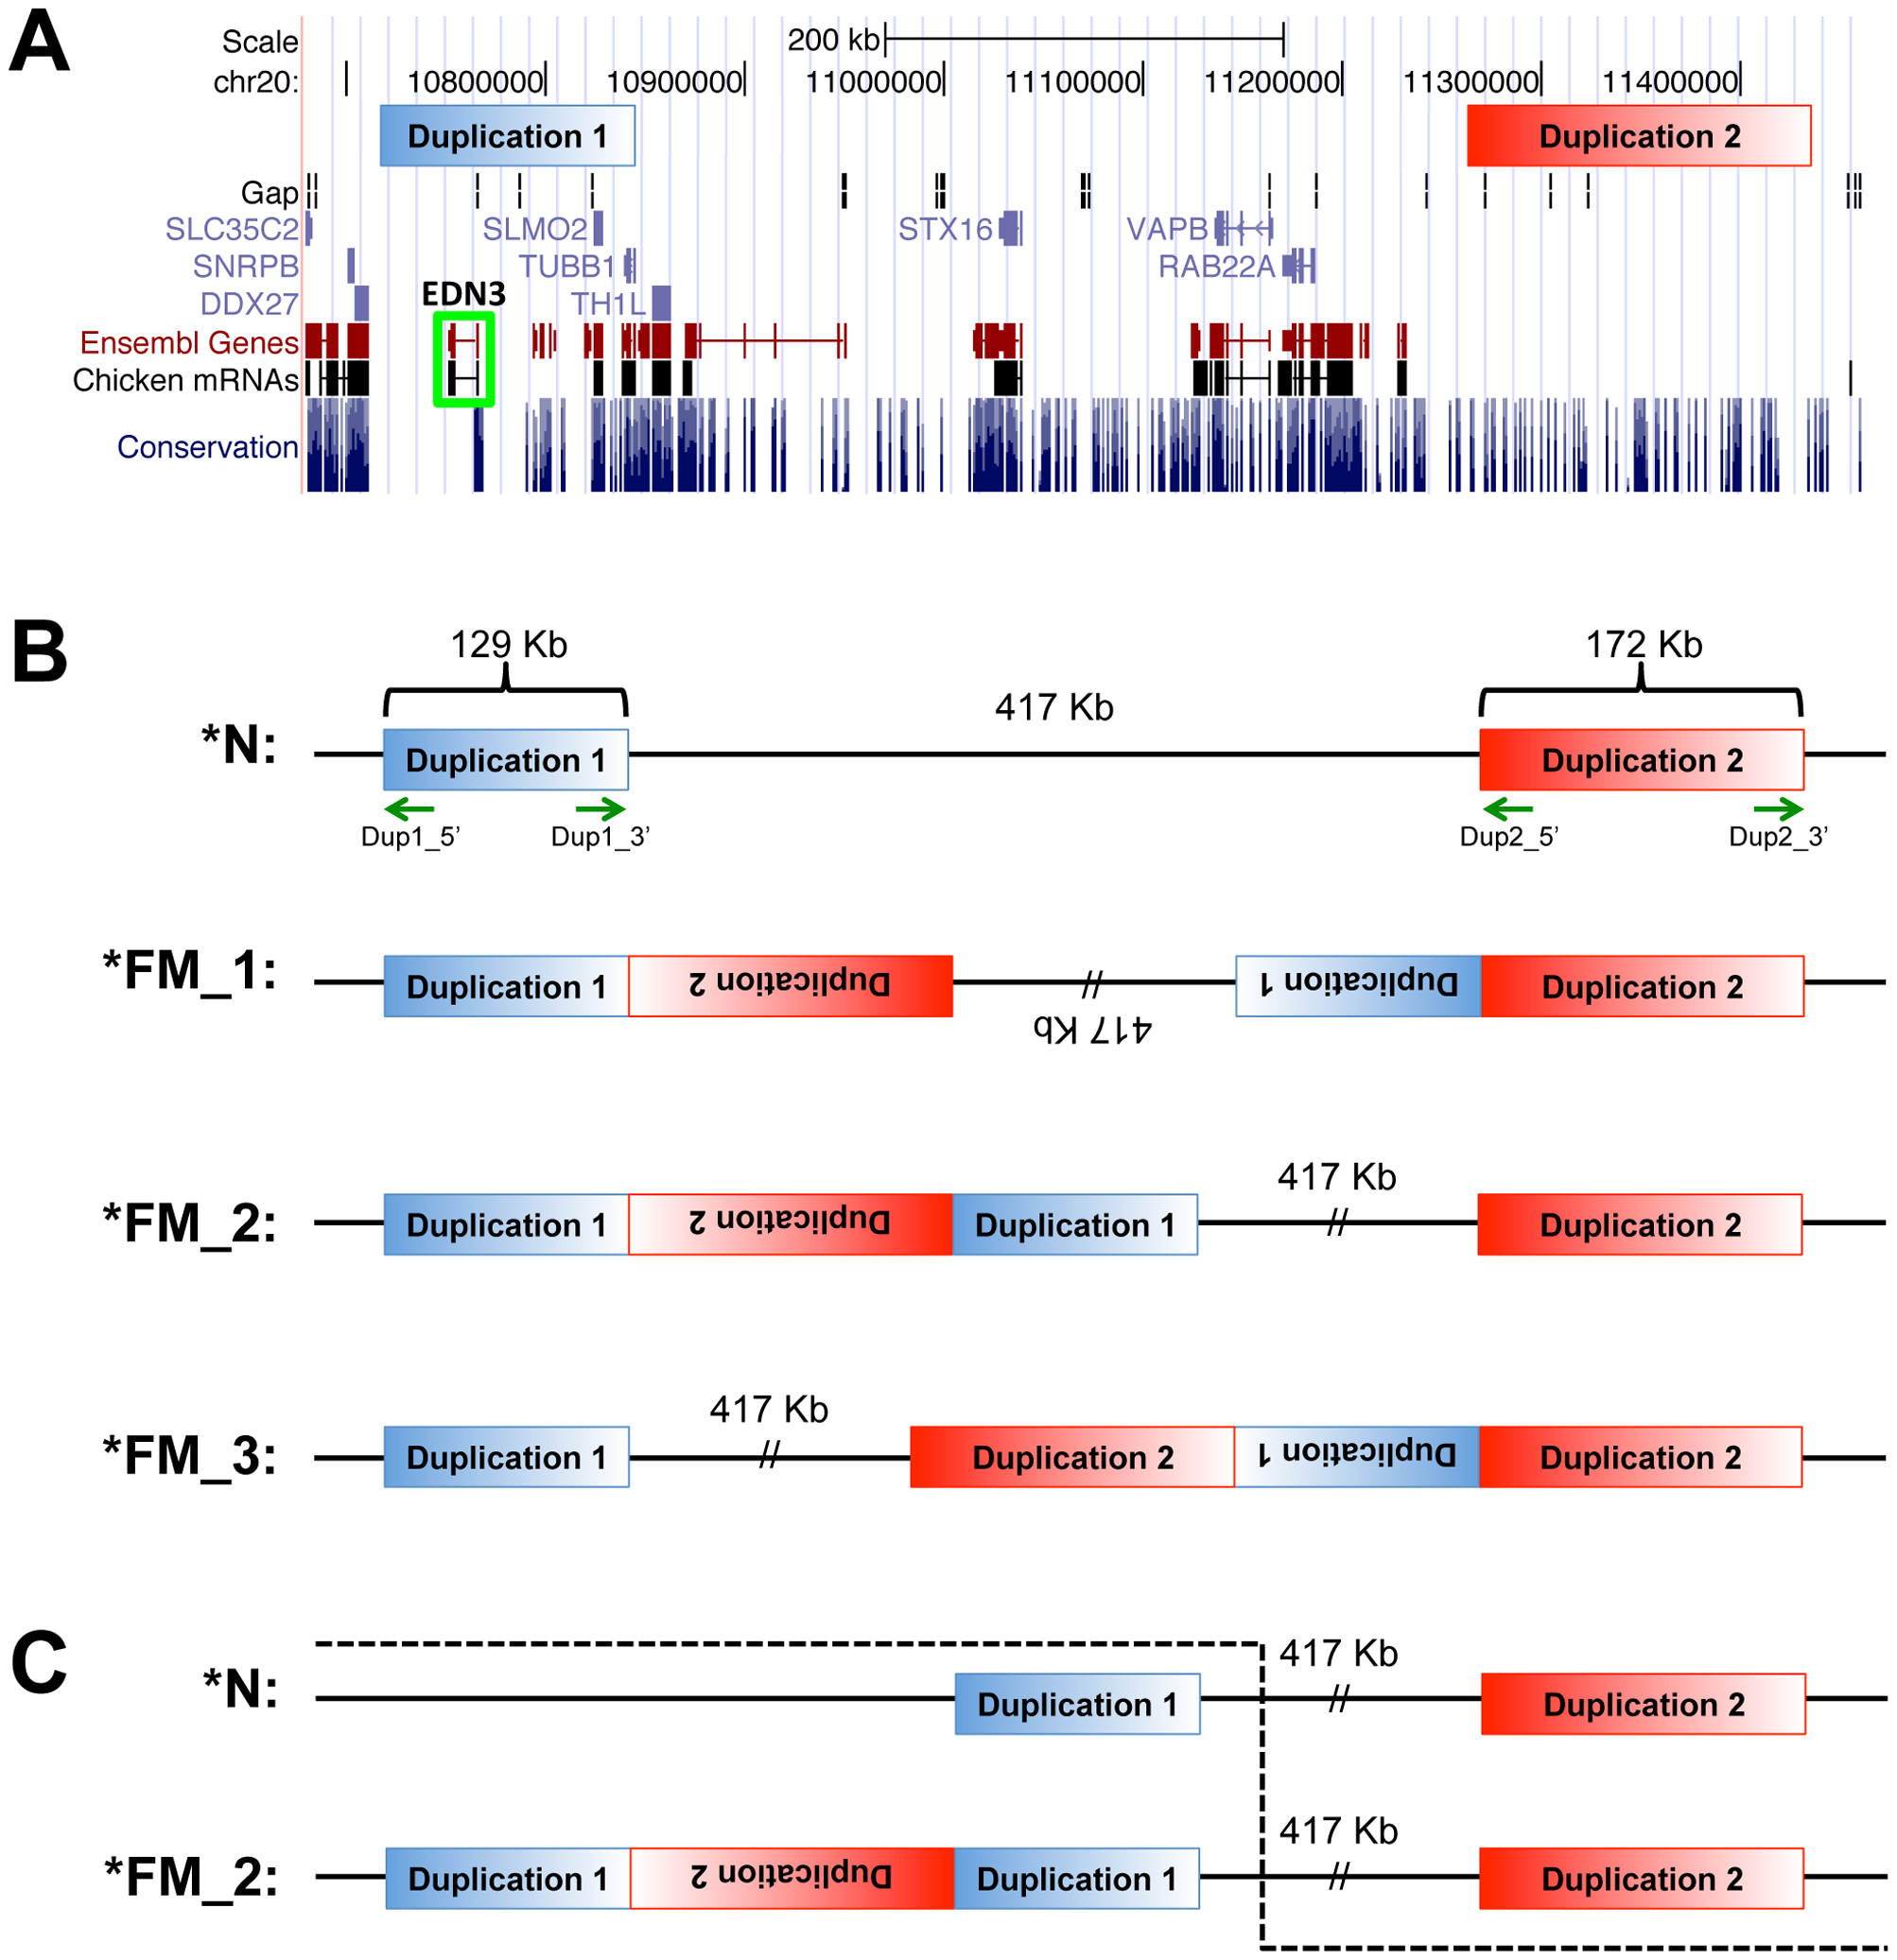 Genome view of duplicated regions and possible rearrangement scenarios.